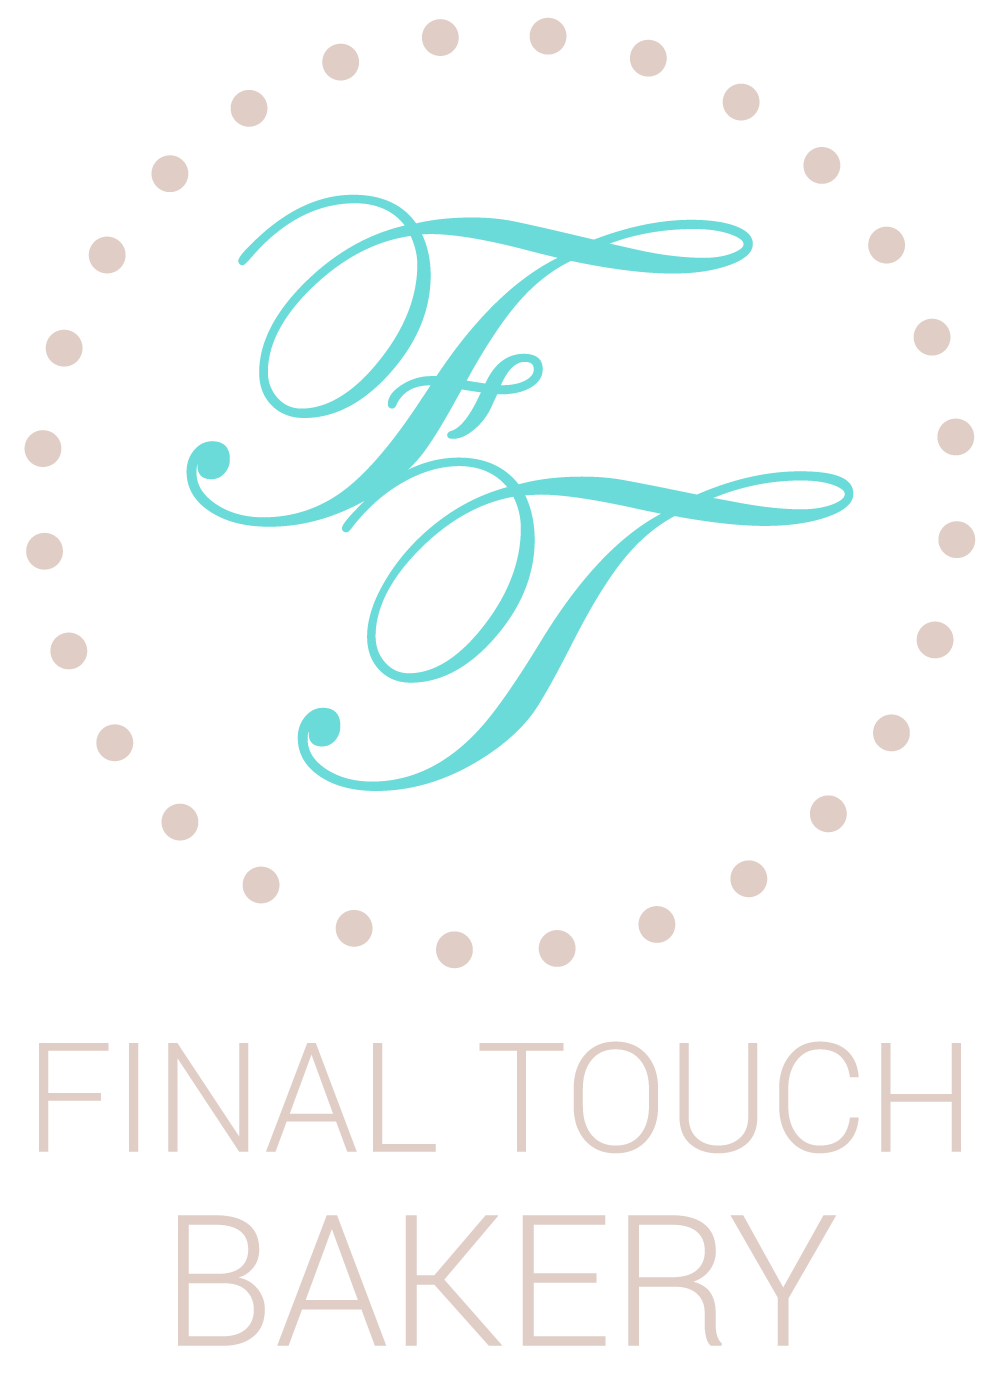 Final Touch Bakery